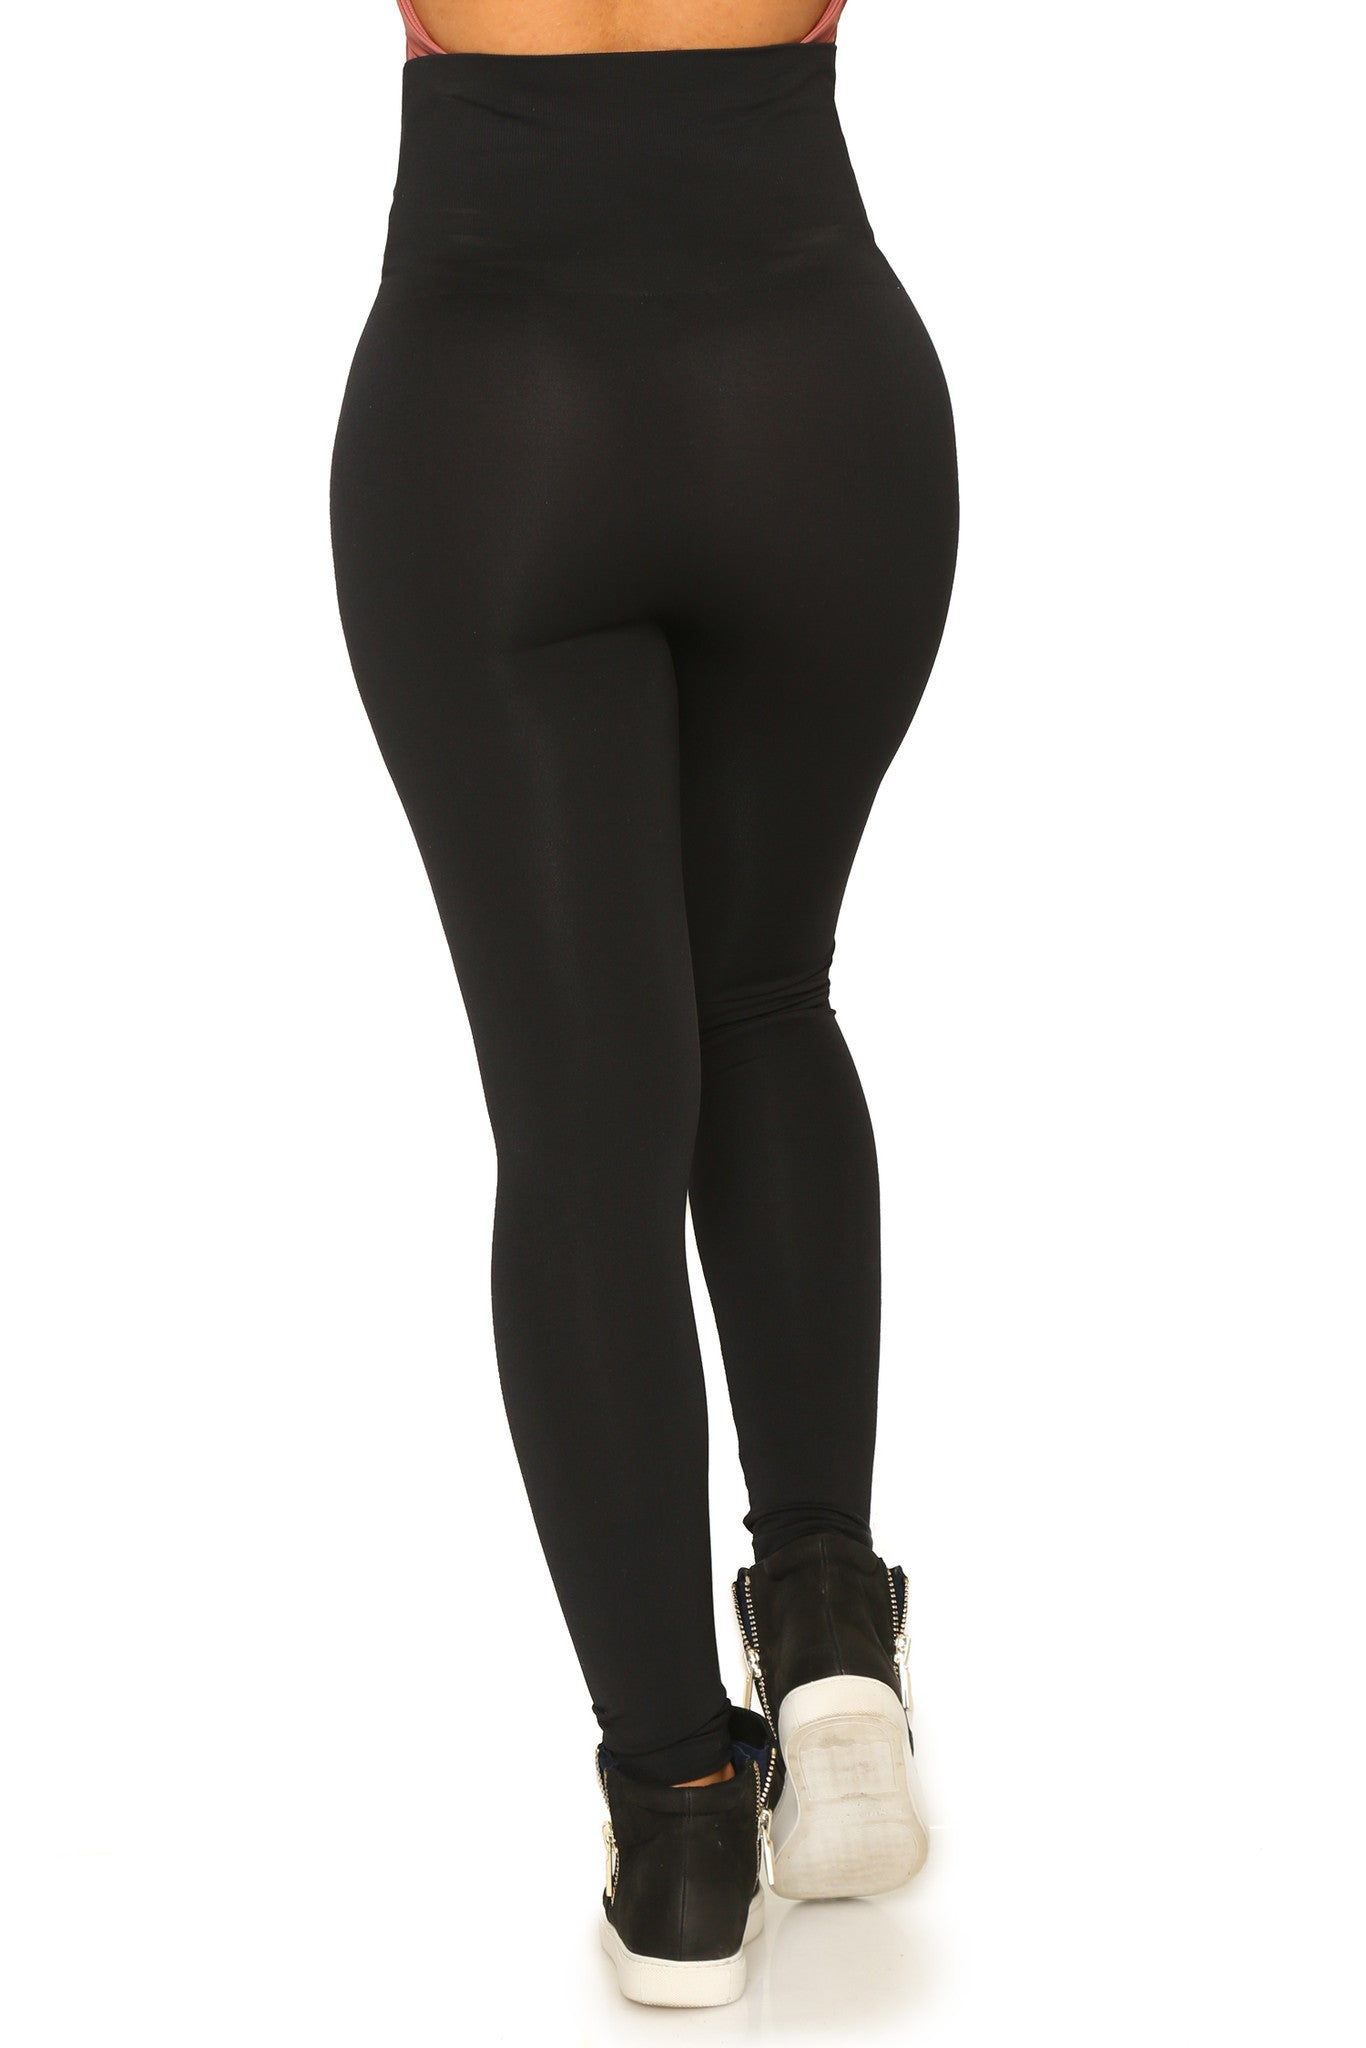 LOURDES LEGGINGS